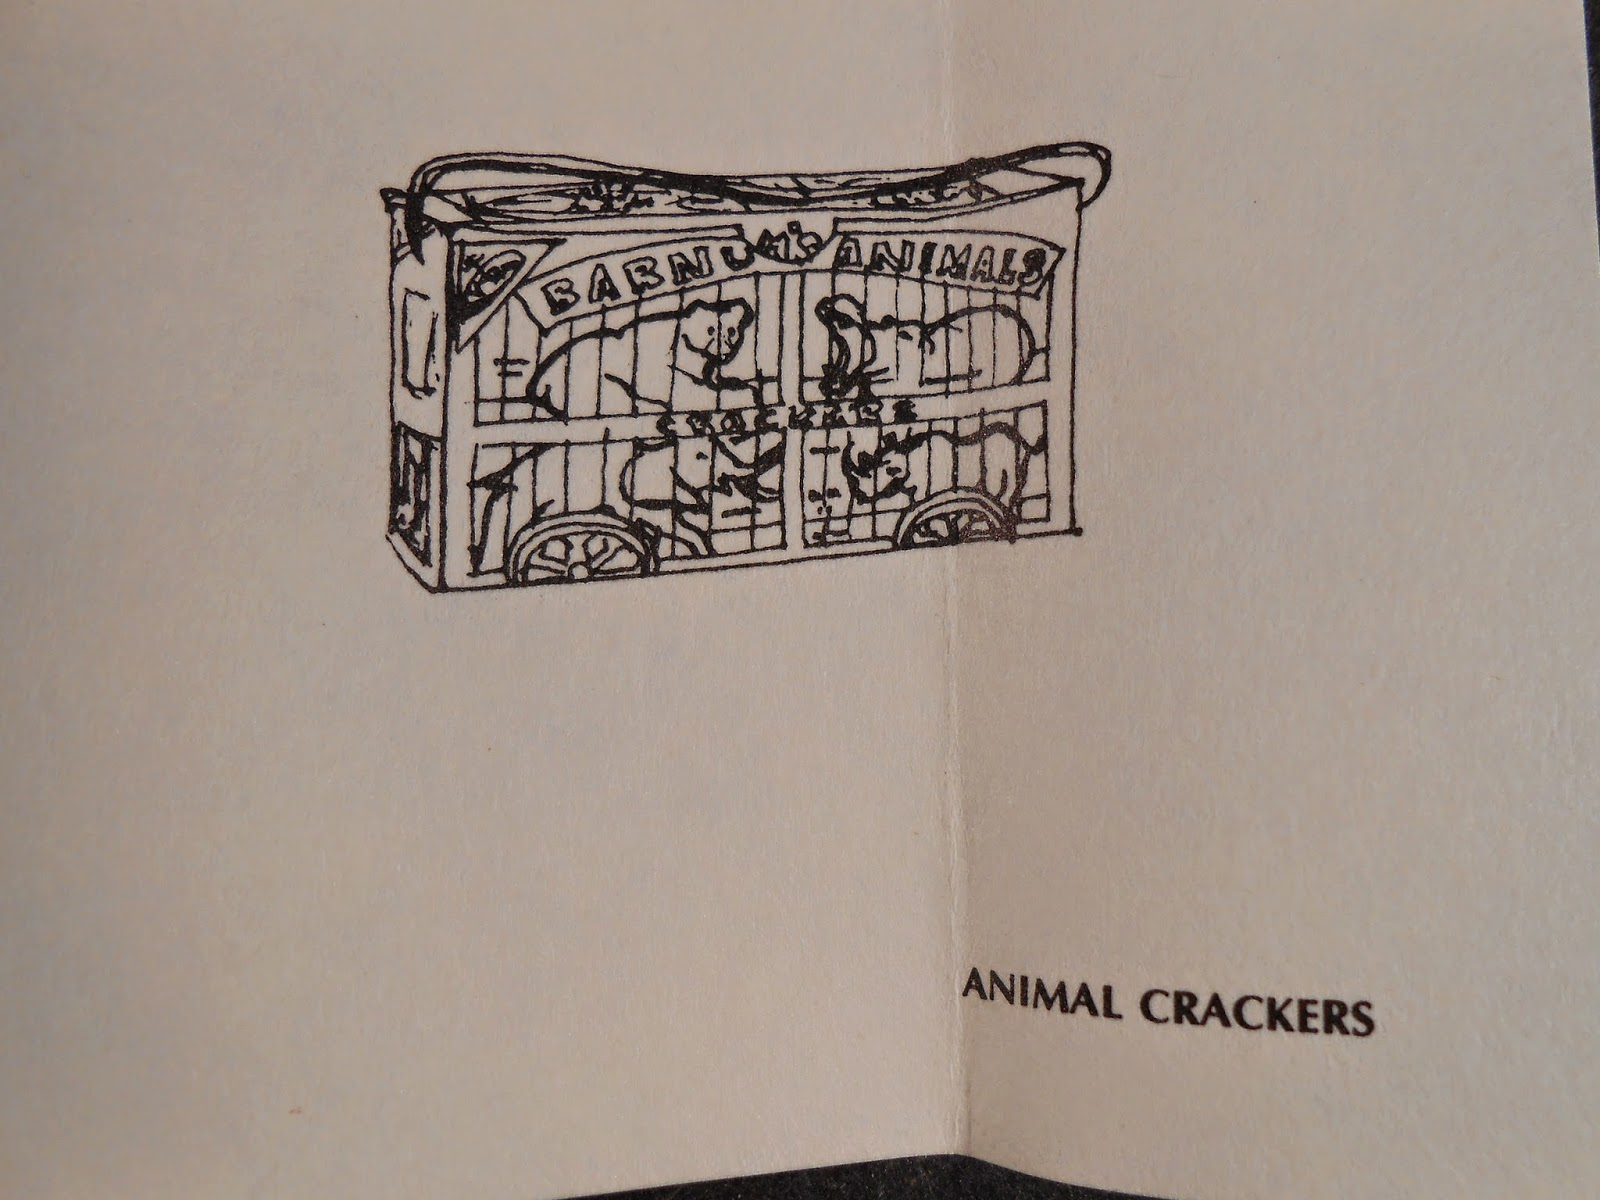 A drawing of a Barnum's animals crackers box.